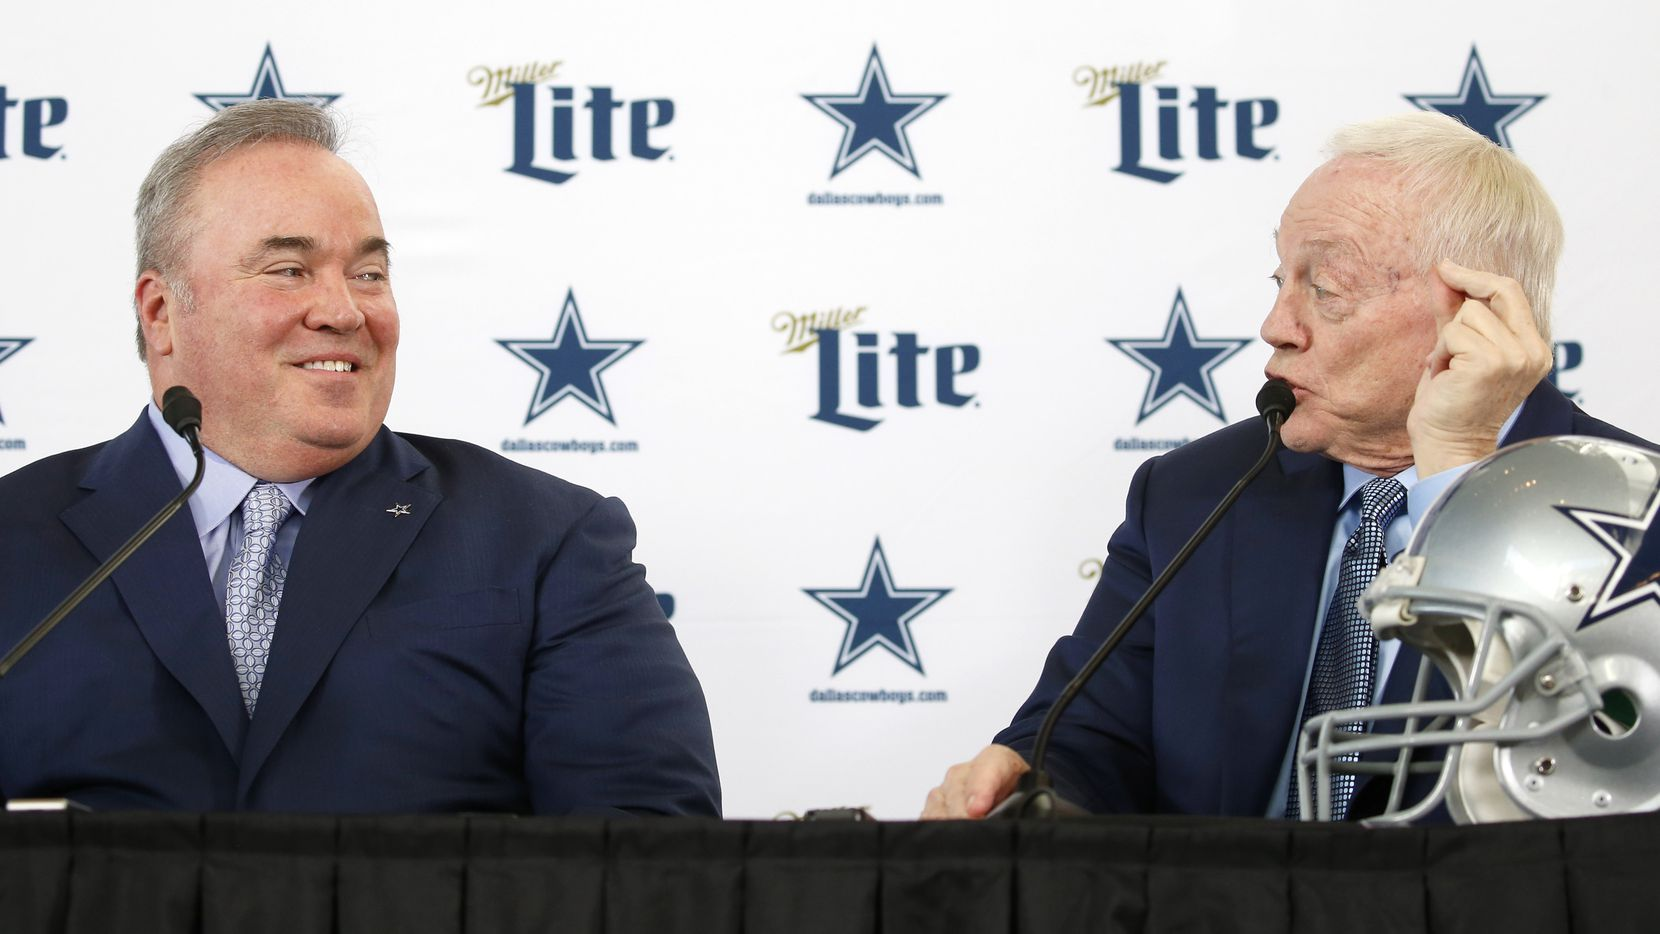 Dallas Cowboys new head coach Mike McCarthy and Dallas Cowboys owner and general manager Jerry Jones look at each other as Jones speaks during a press conference introducing the newly hired coach in the Ford Center at The Star in Frisco, on Wednesday, January 8, 2020.